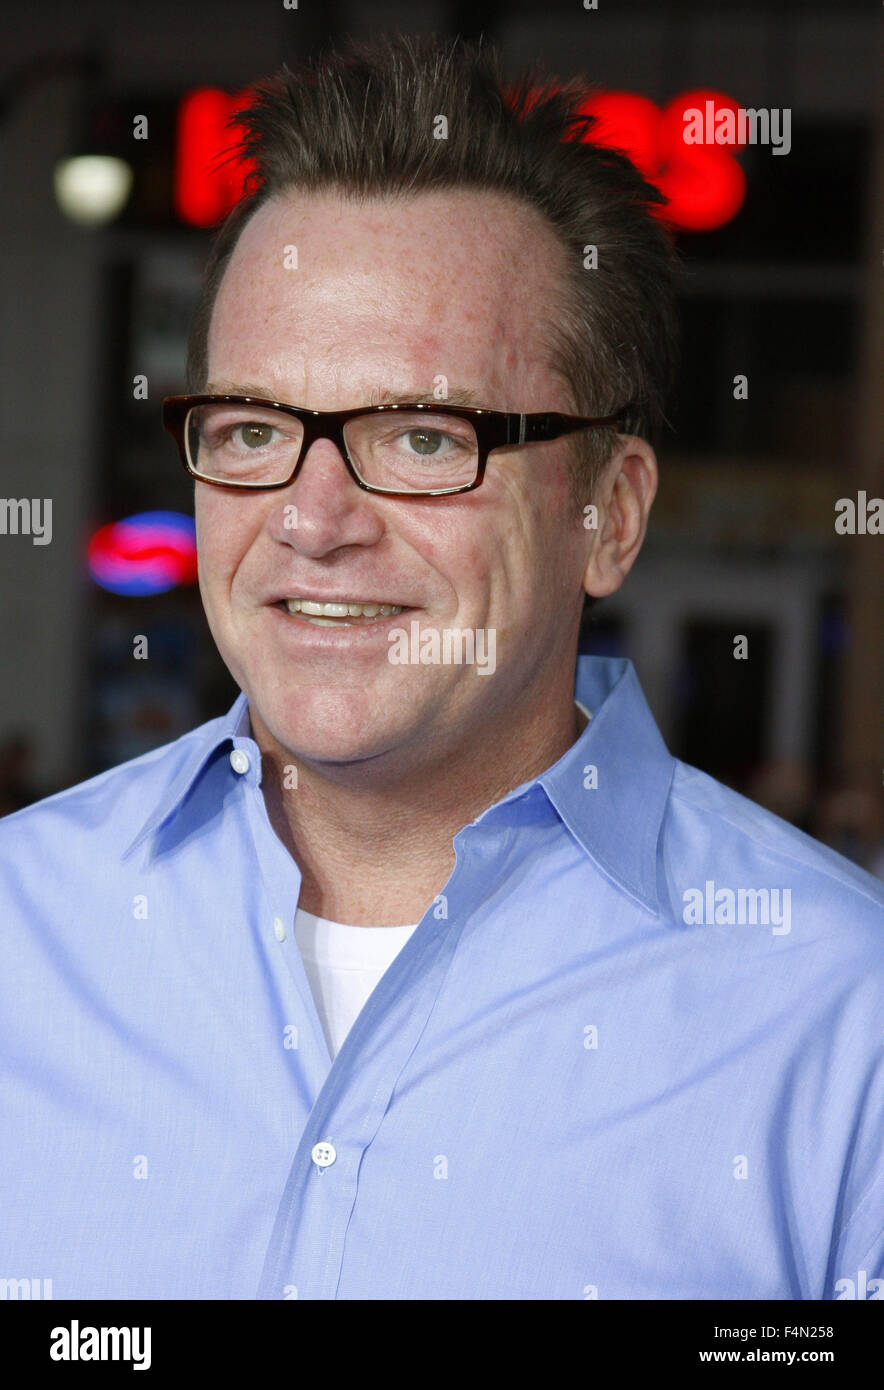 10/04/2008 - Hollywood - Tom Arnold arrives to the World Premiere of 'Forgetting Sarah Marshall' held at - Stock Image